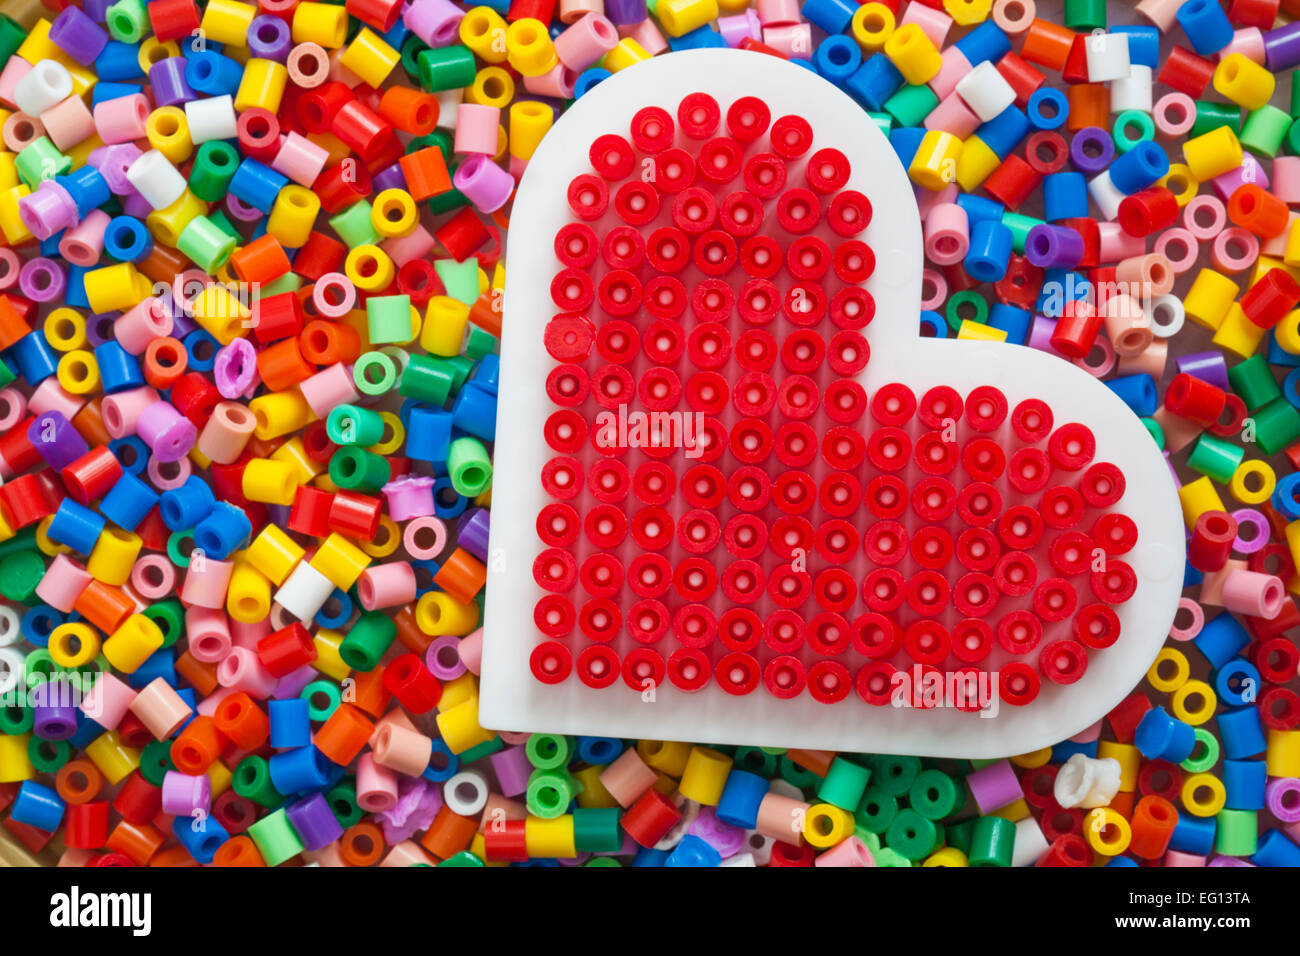 Plastic beads for crafts - Stock Photo Plastic Multi Coloured Hama Beads With Red Heart Completed Template For Crafts